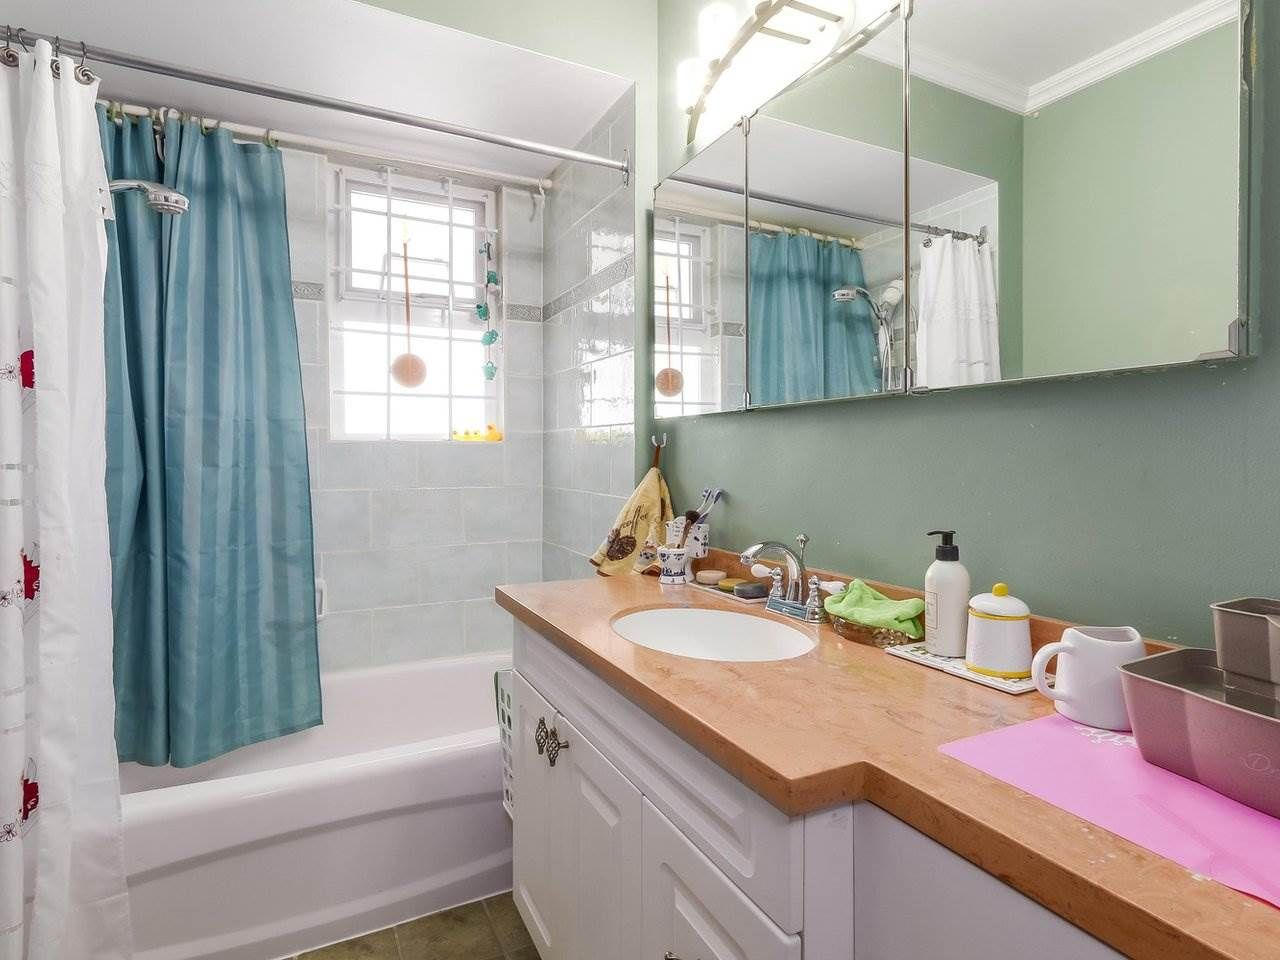 Photo 10: Photos: 165 E 55TH AVENUE in Vancouver: South Vancouver House for sale (Vancouver East)  : MLS®# R2297472